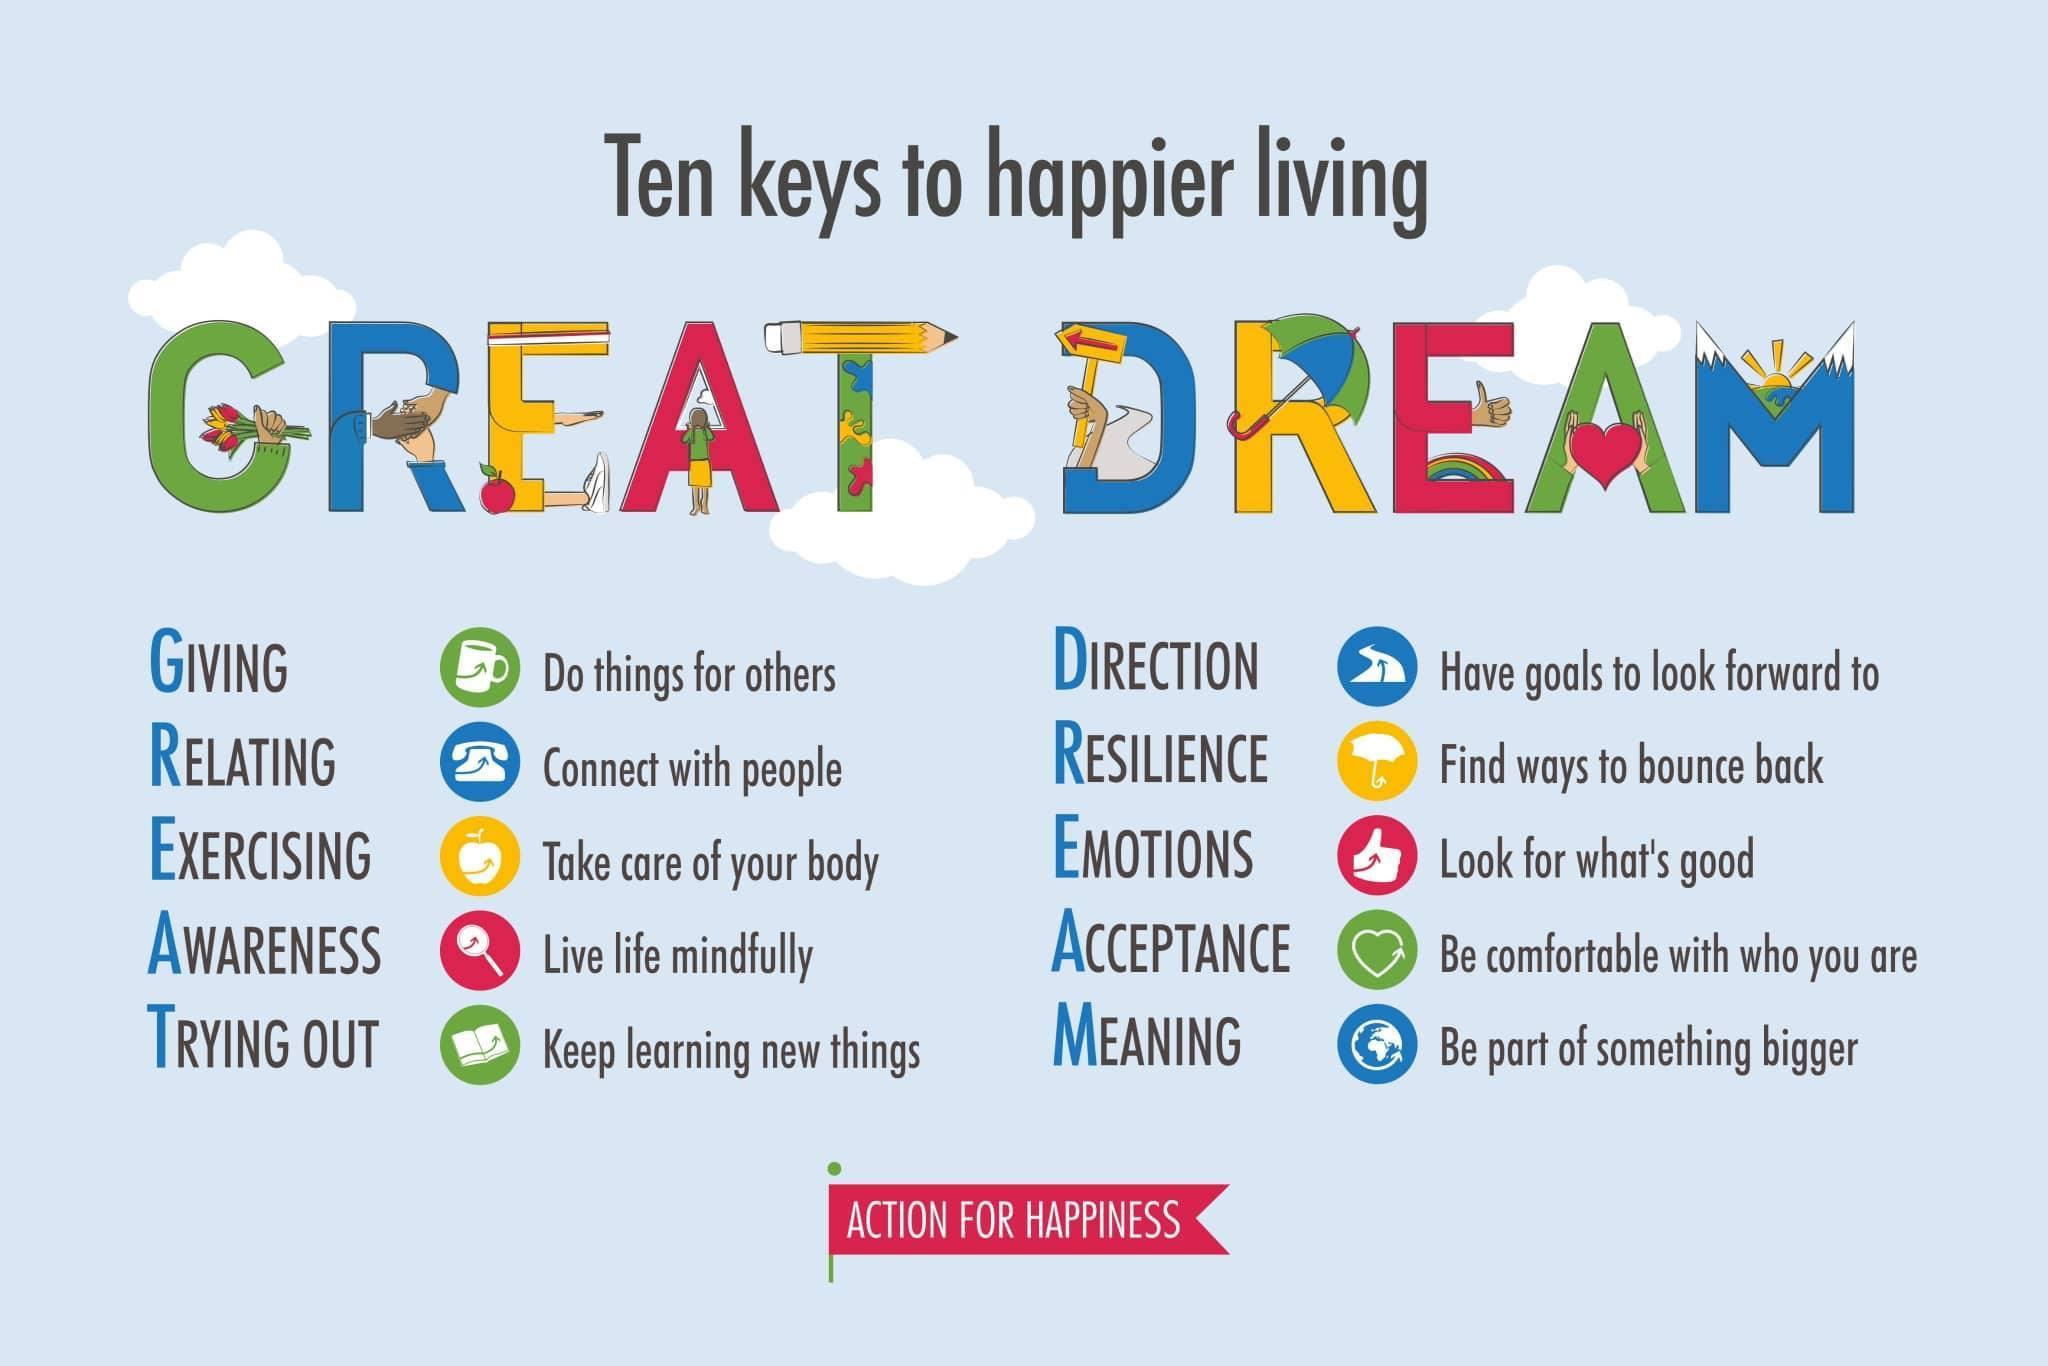 [image] steps to happier living on international day of happiness